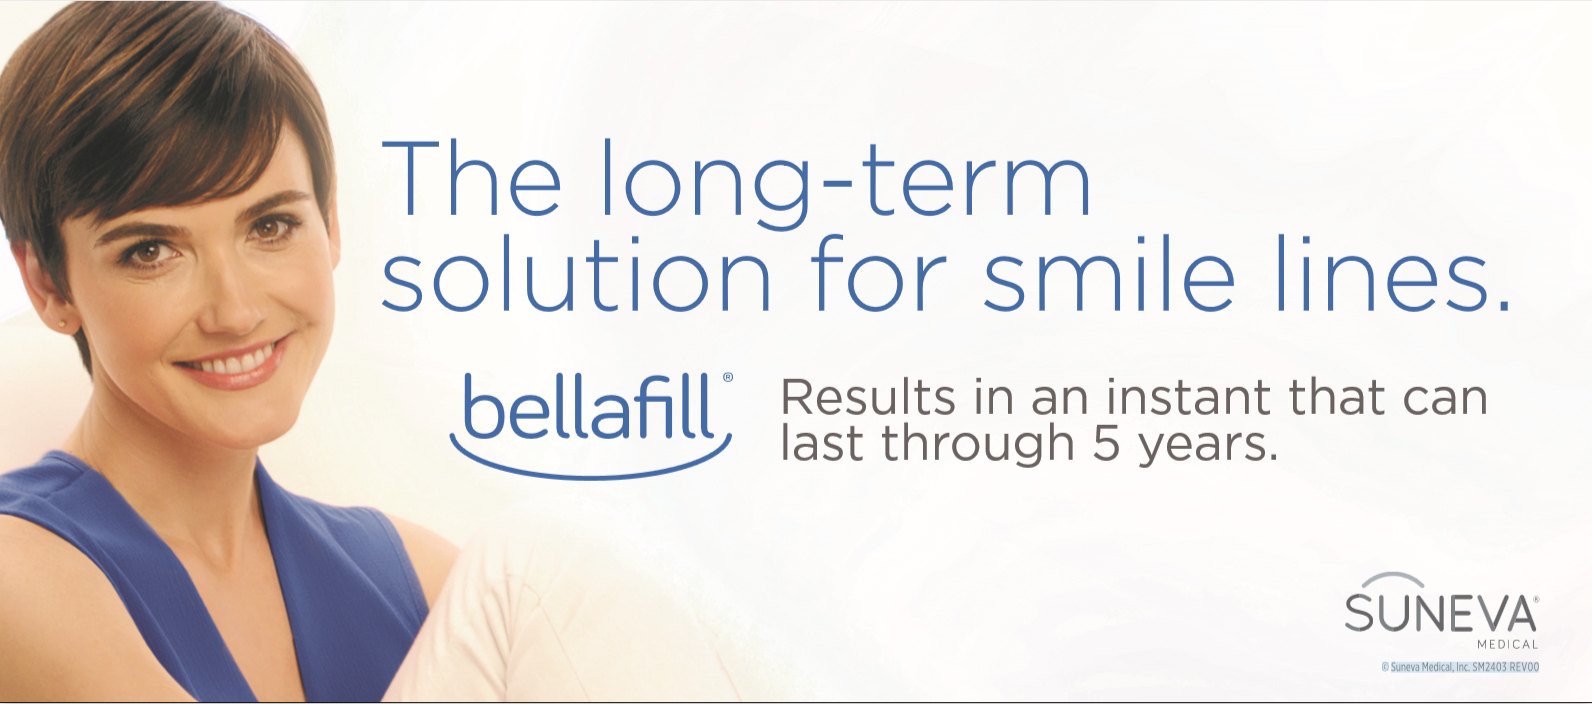 Bellafill for Smile Lines